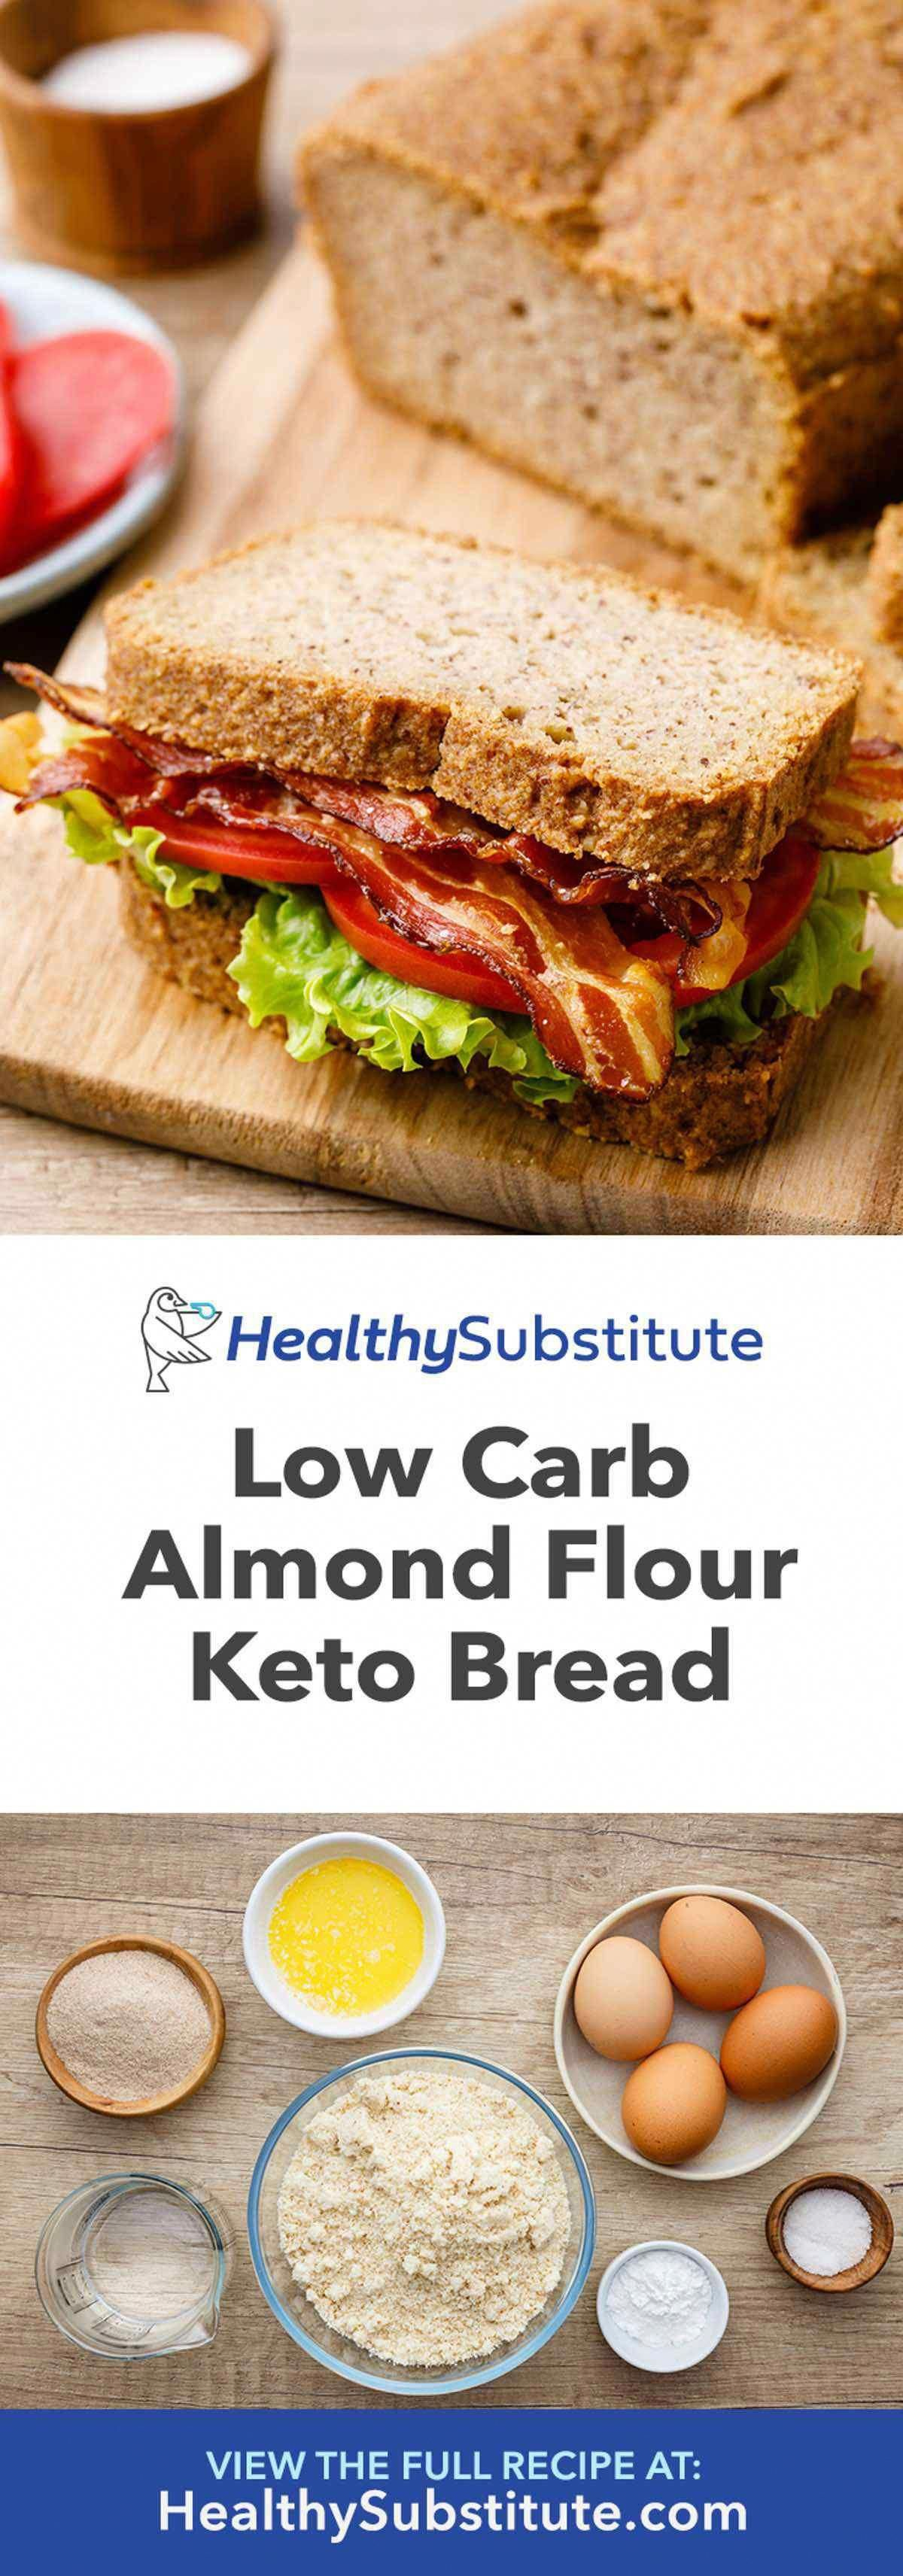 Keto Bread Recipe Without Xanthan Gum # ...